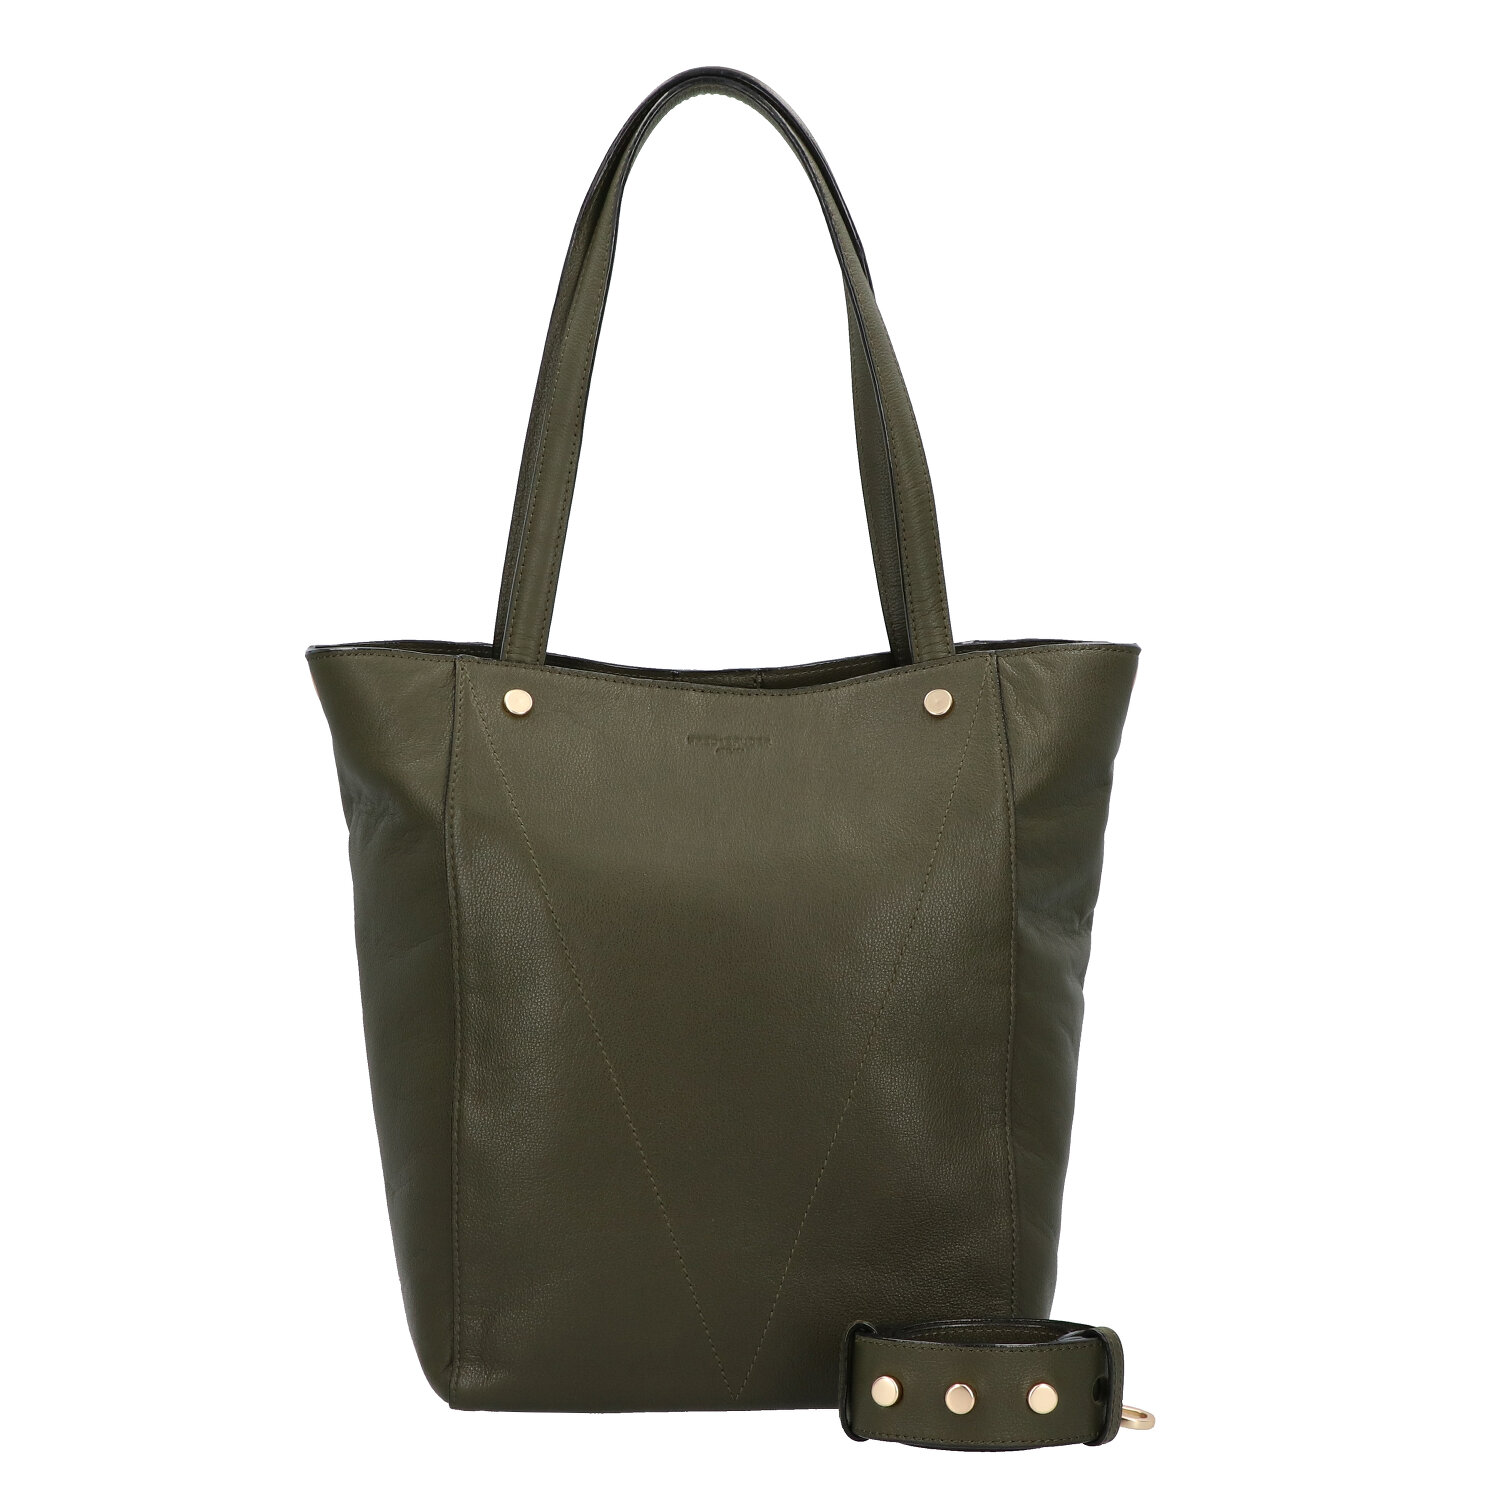 Tasche 24 Shopper Cm Fat City Atelier Leder CtshrQdx